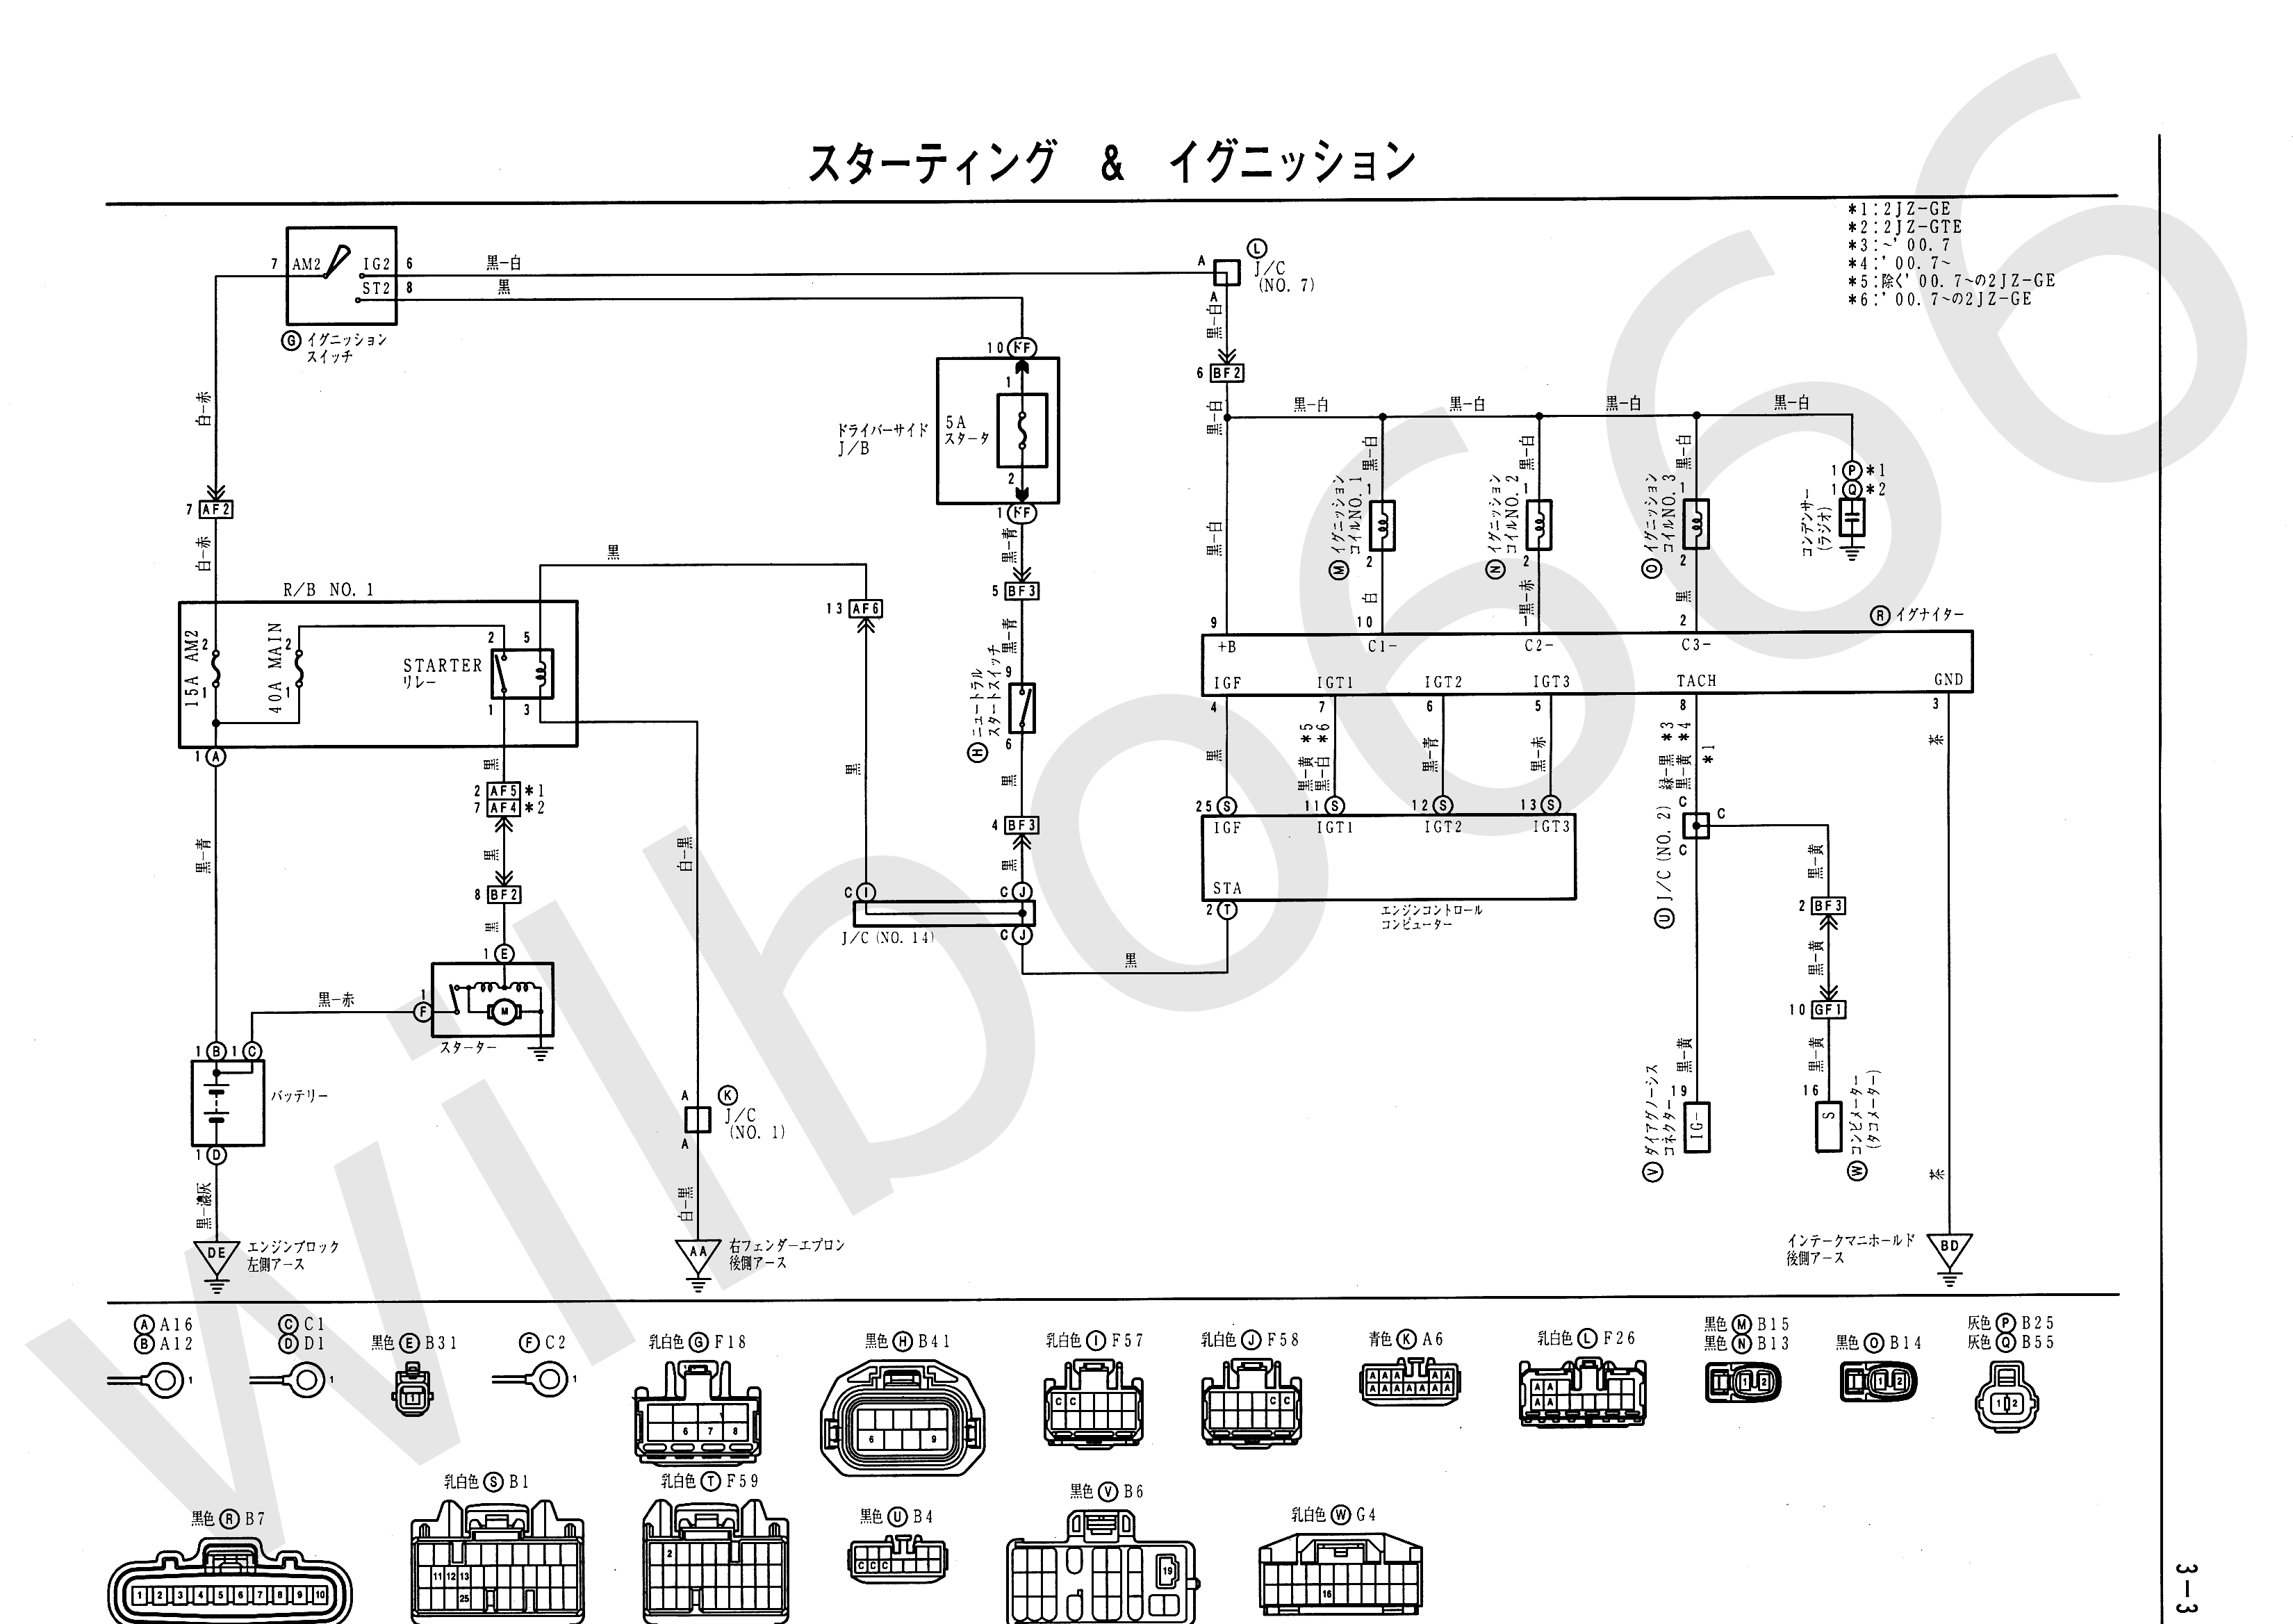 JZS161 Electrical Wiring Diagram 6748505 3 3 wilbo666 2jz gte vvti jzs161 aristo engine wiring 2jz wiring diagram at gsmportal.co